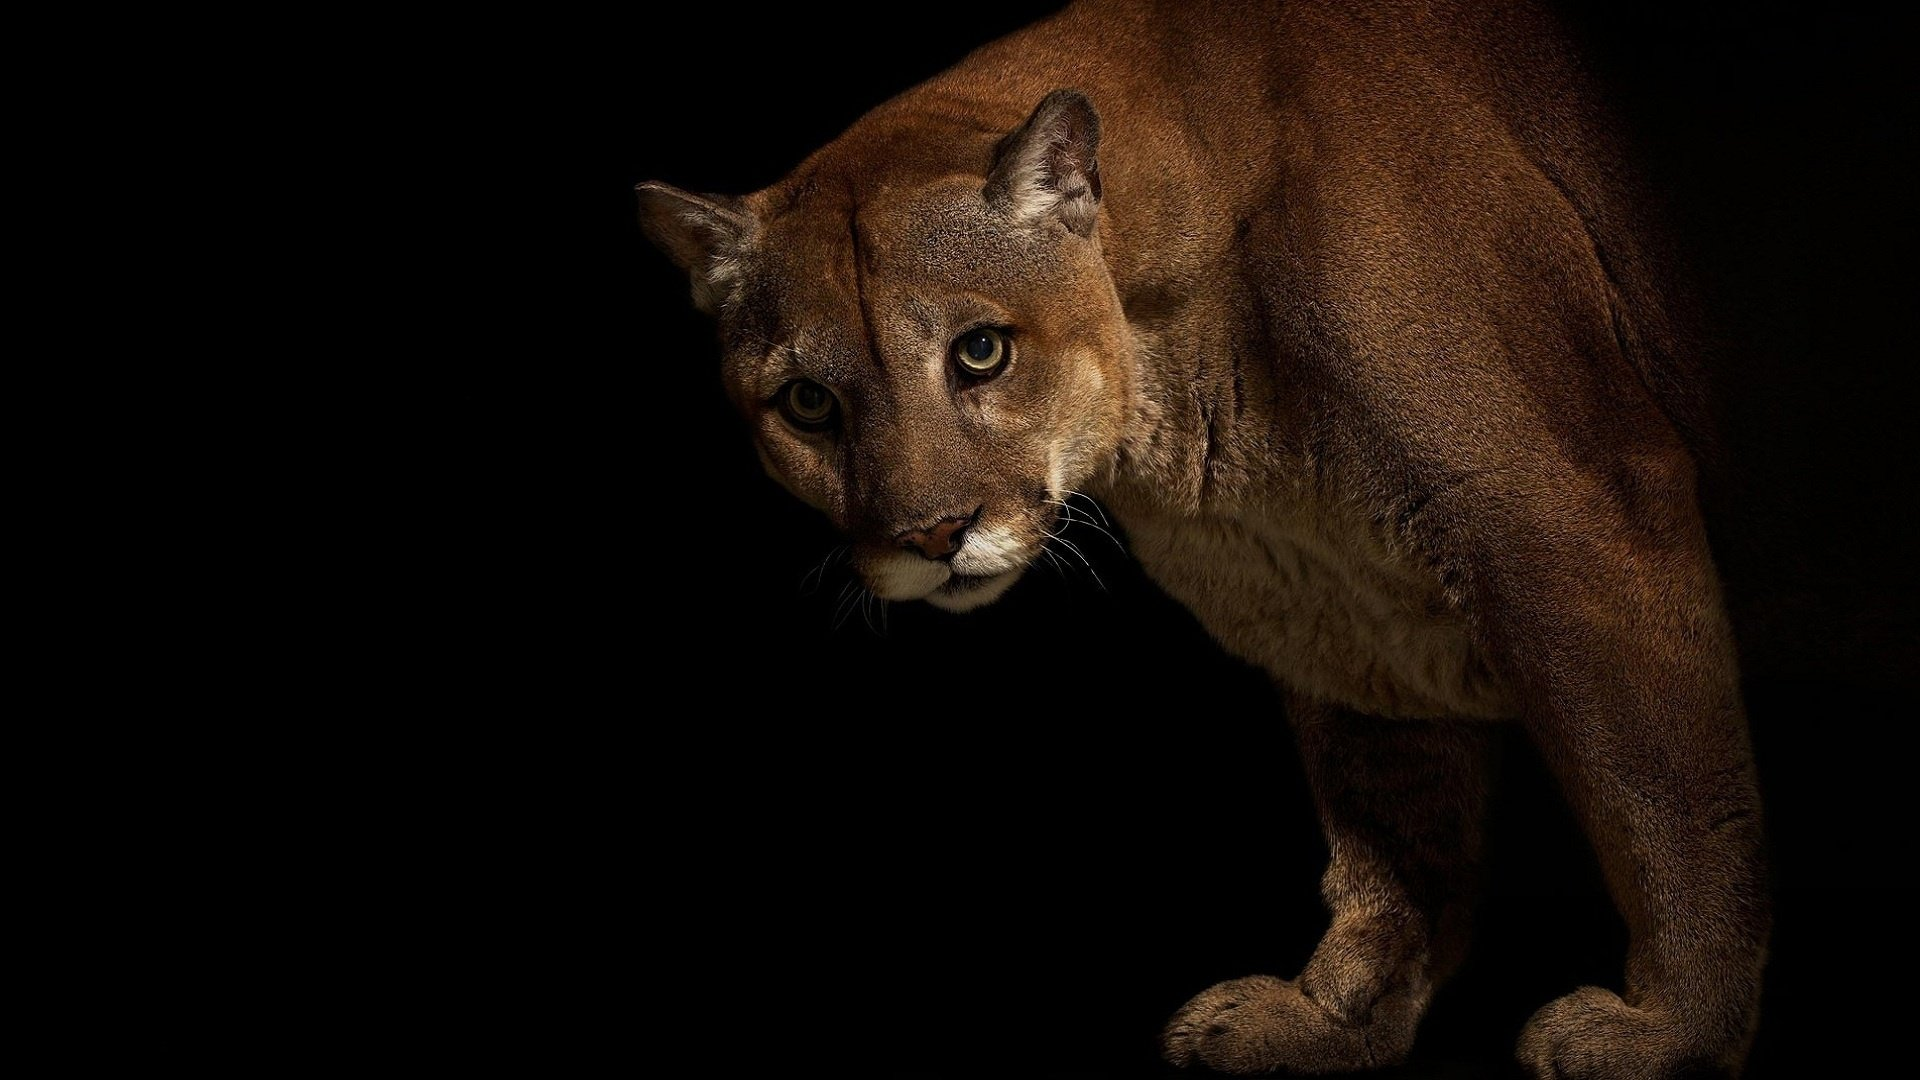 Download full hd 1920x1080 Cougar desktop background ID:81757 for free